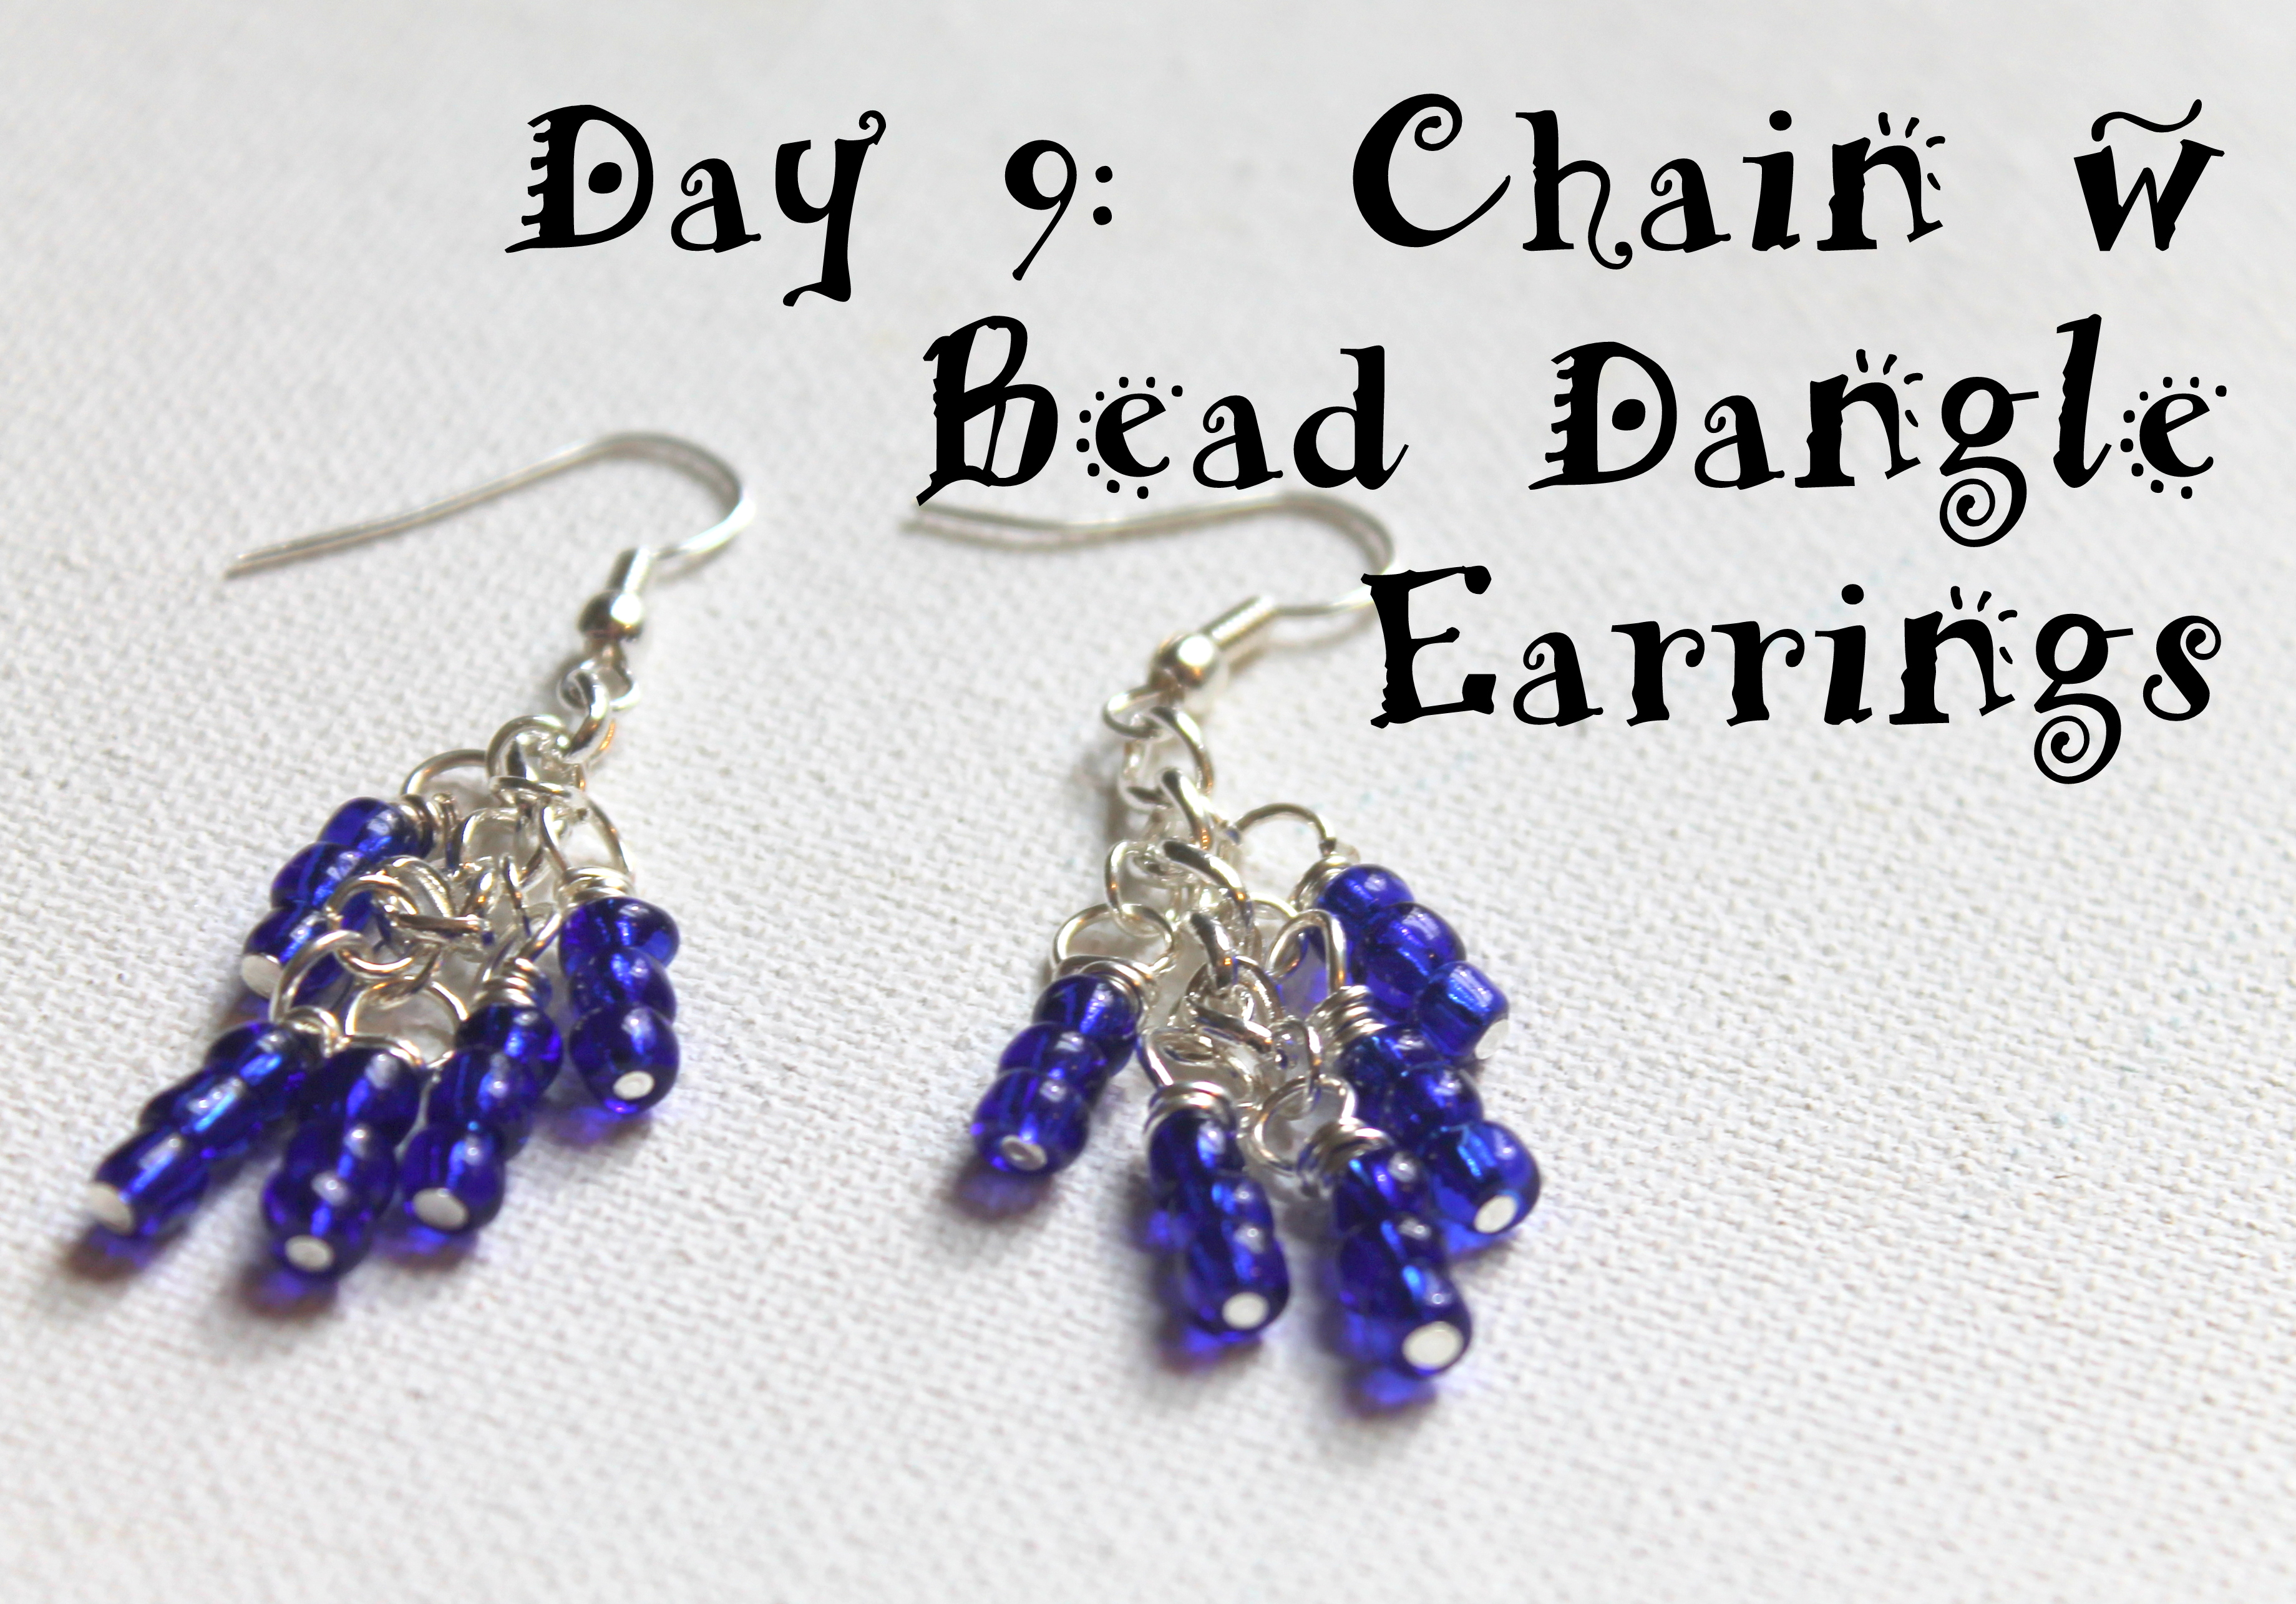 Wire Wrapping for Beginners Day 9: Chain with Bead Dangle Earrings ...